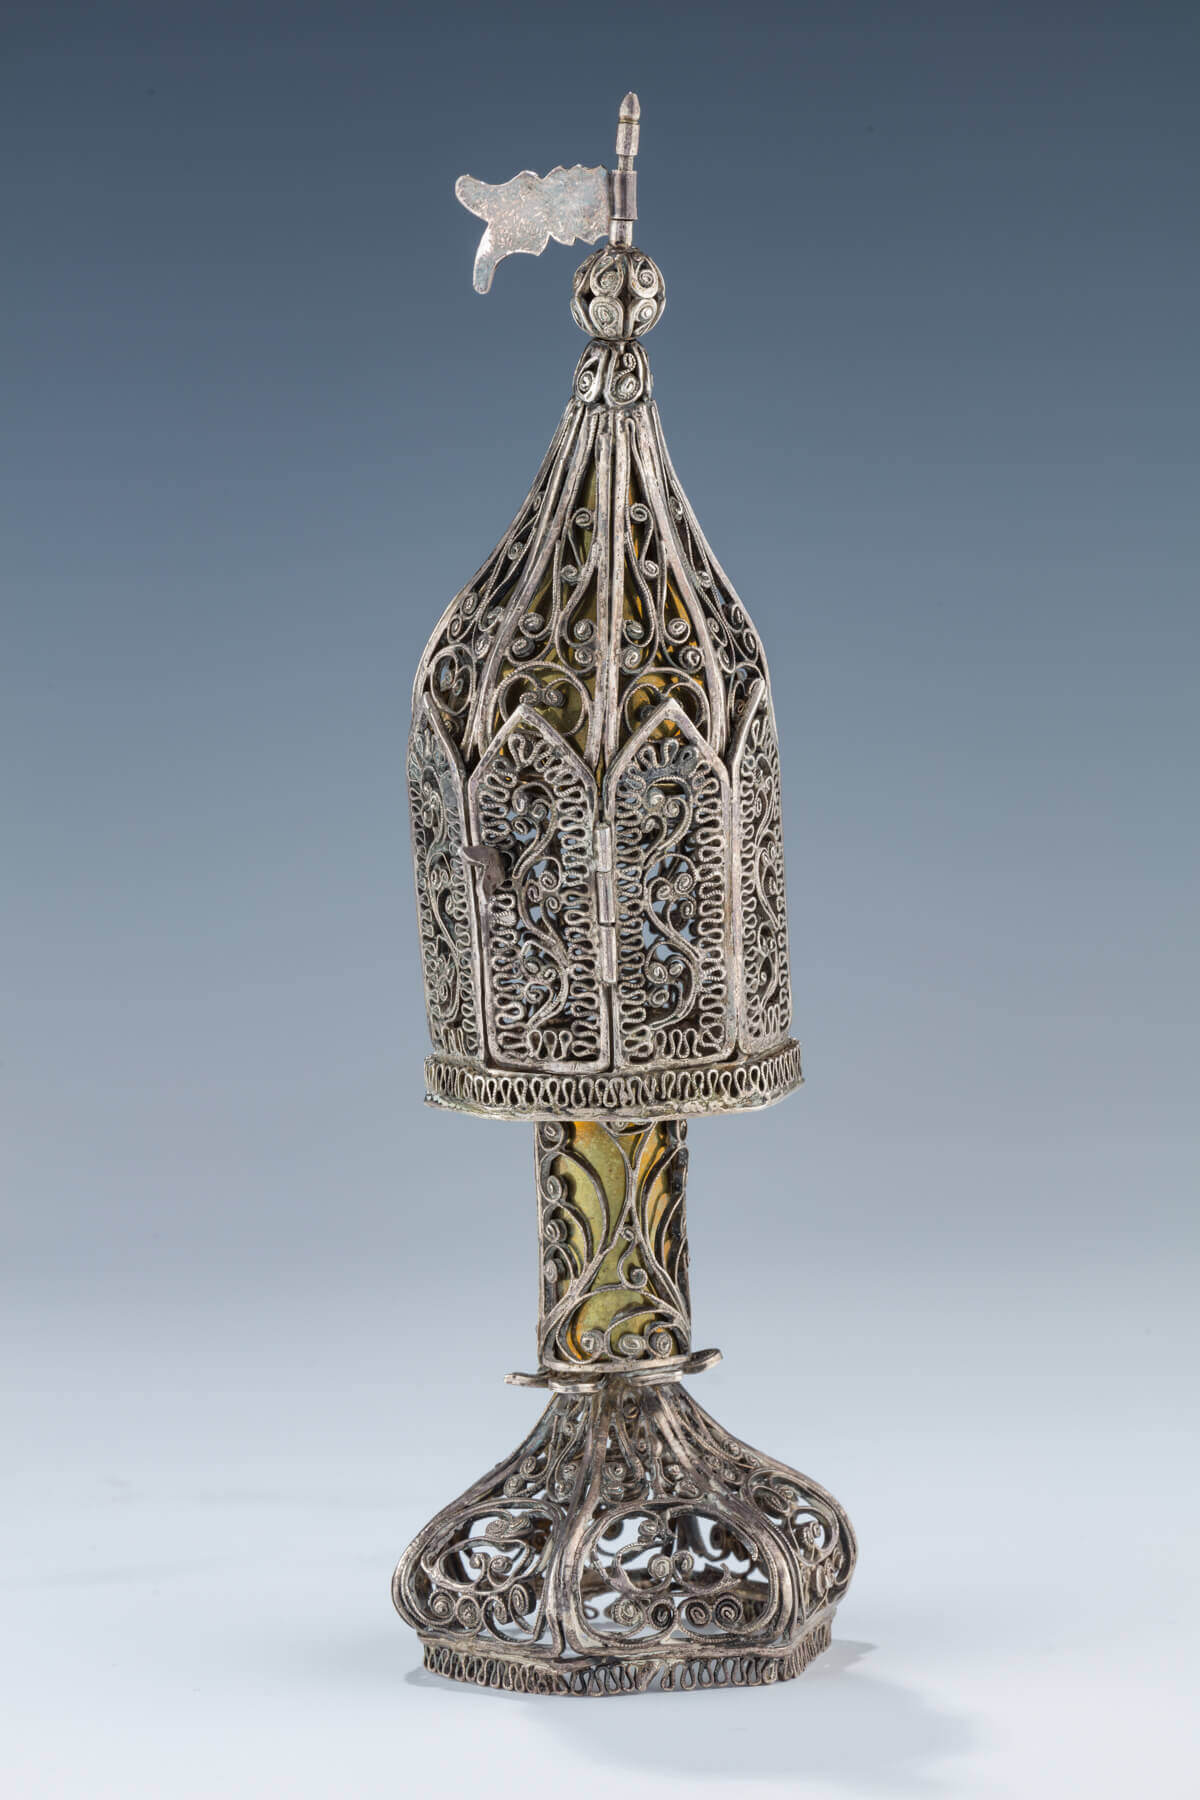 032. AN EARLY SILVER FILIGREE SPICE CONTAINER